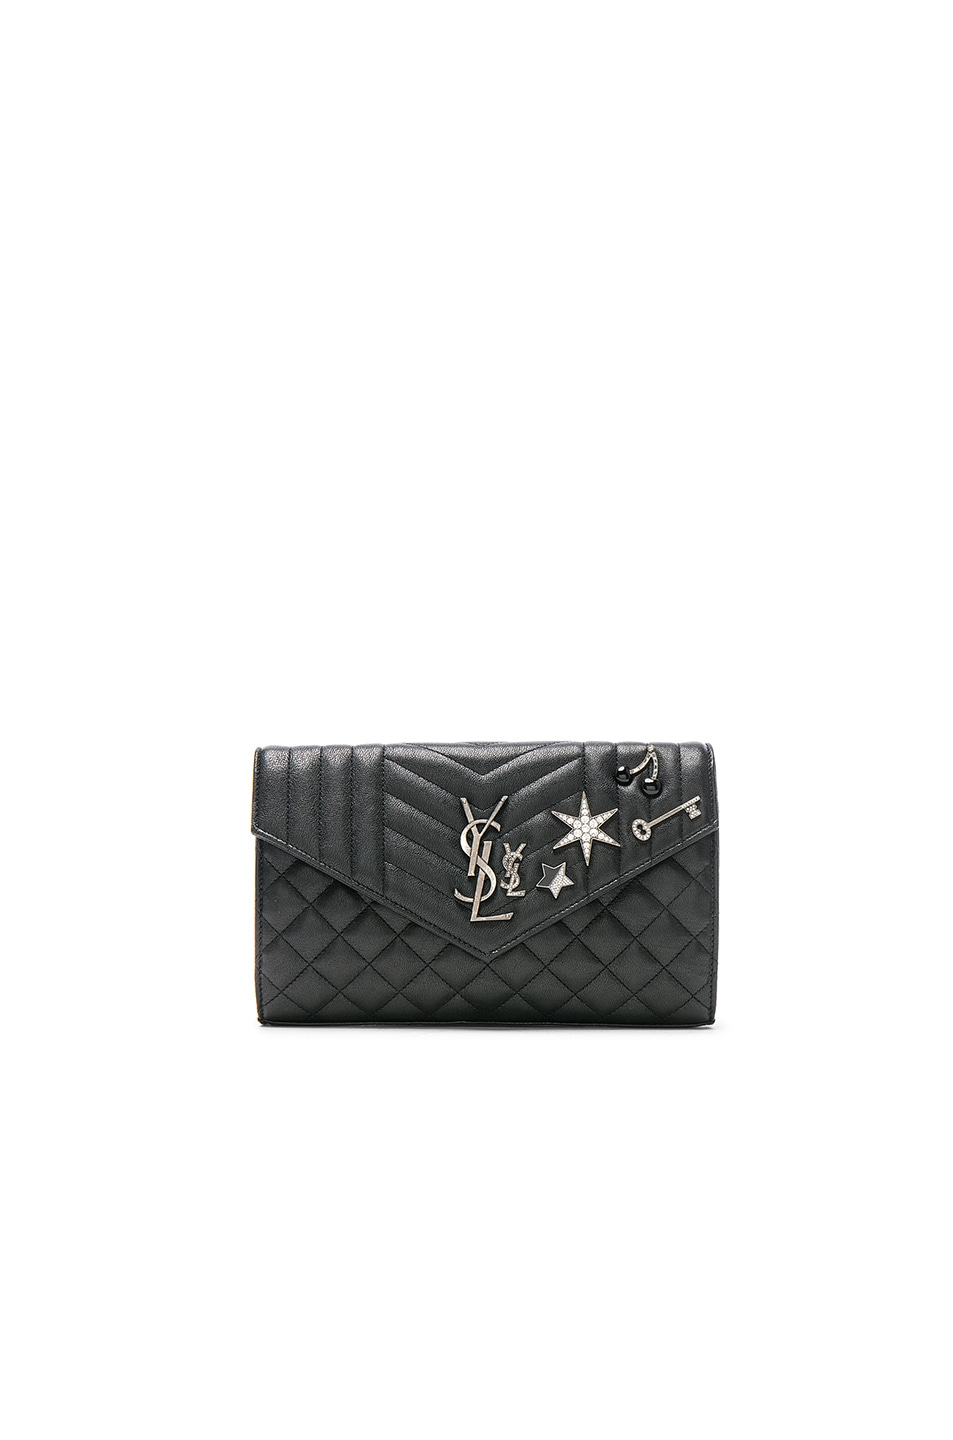 Image 1 of Saint Laurent Embellished Monogramme Envelope Chain Wallet in Black